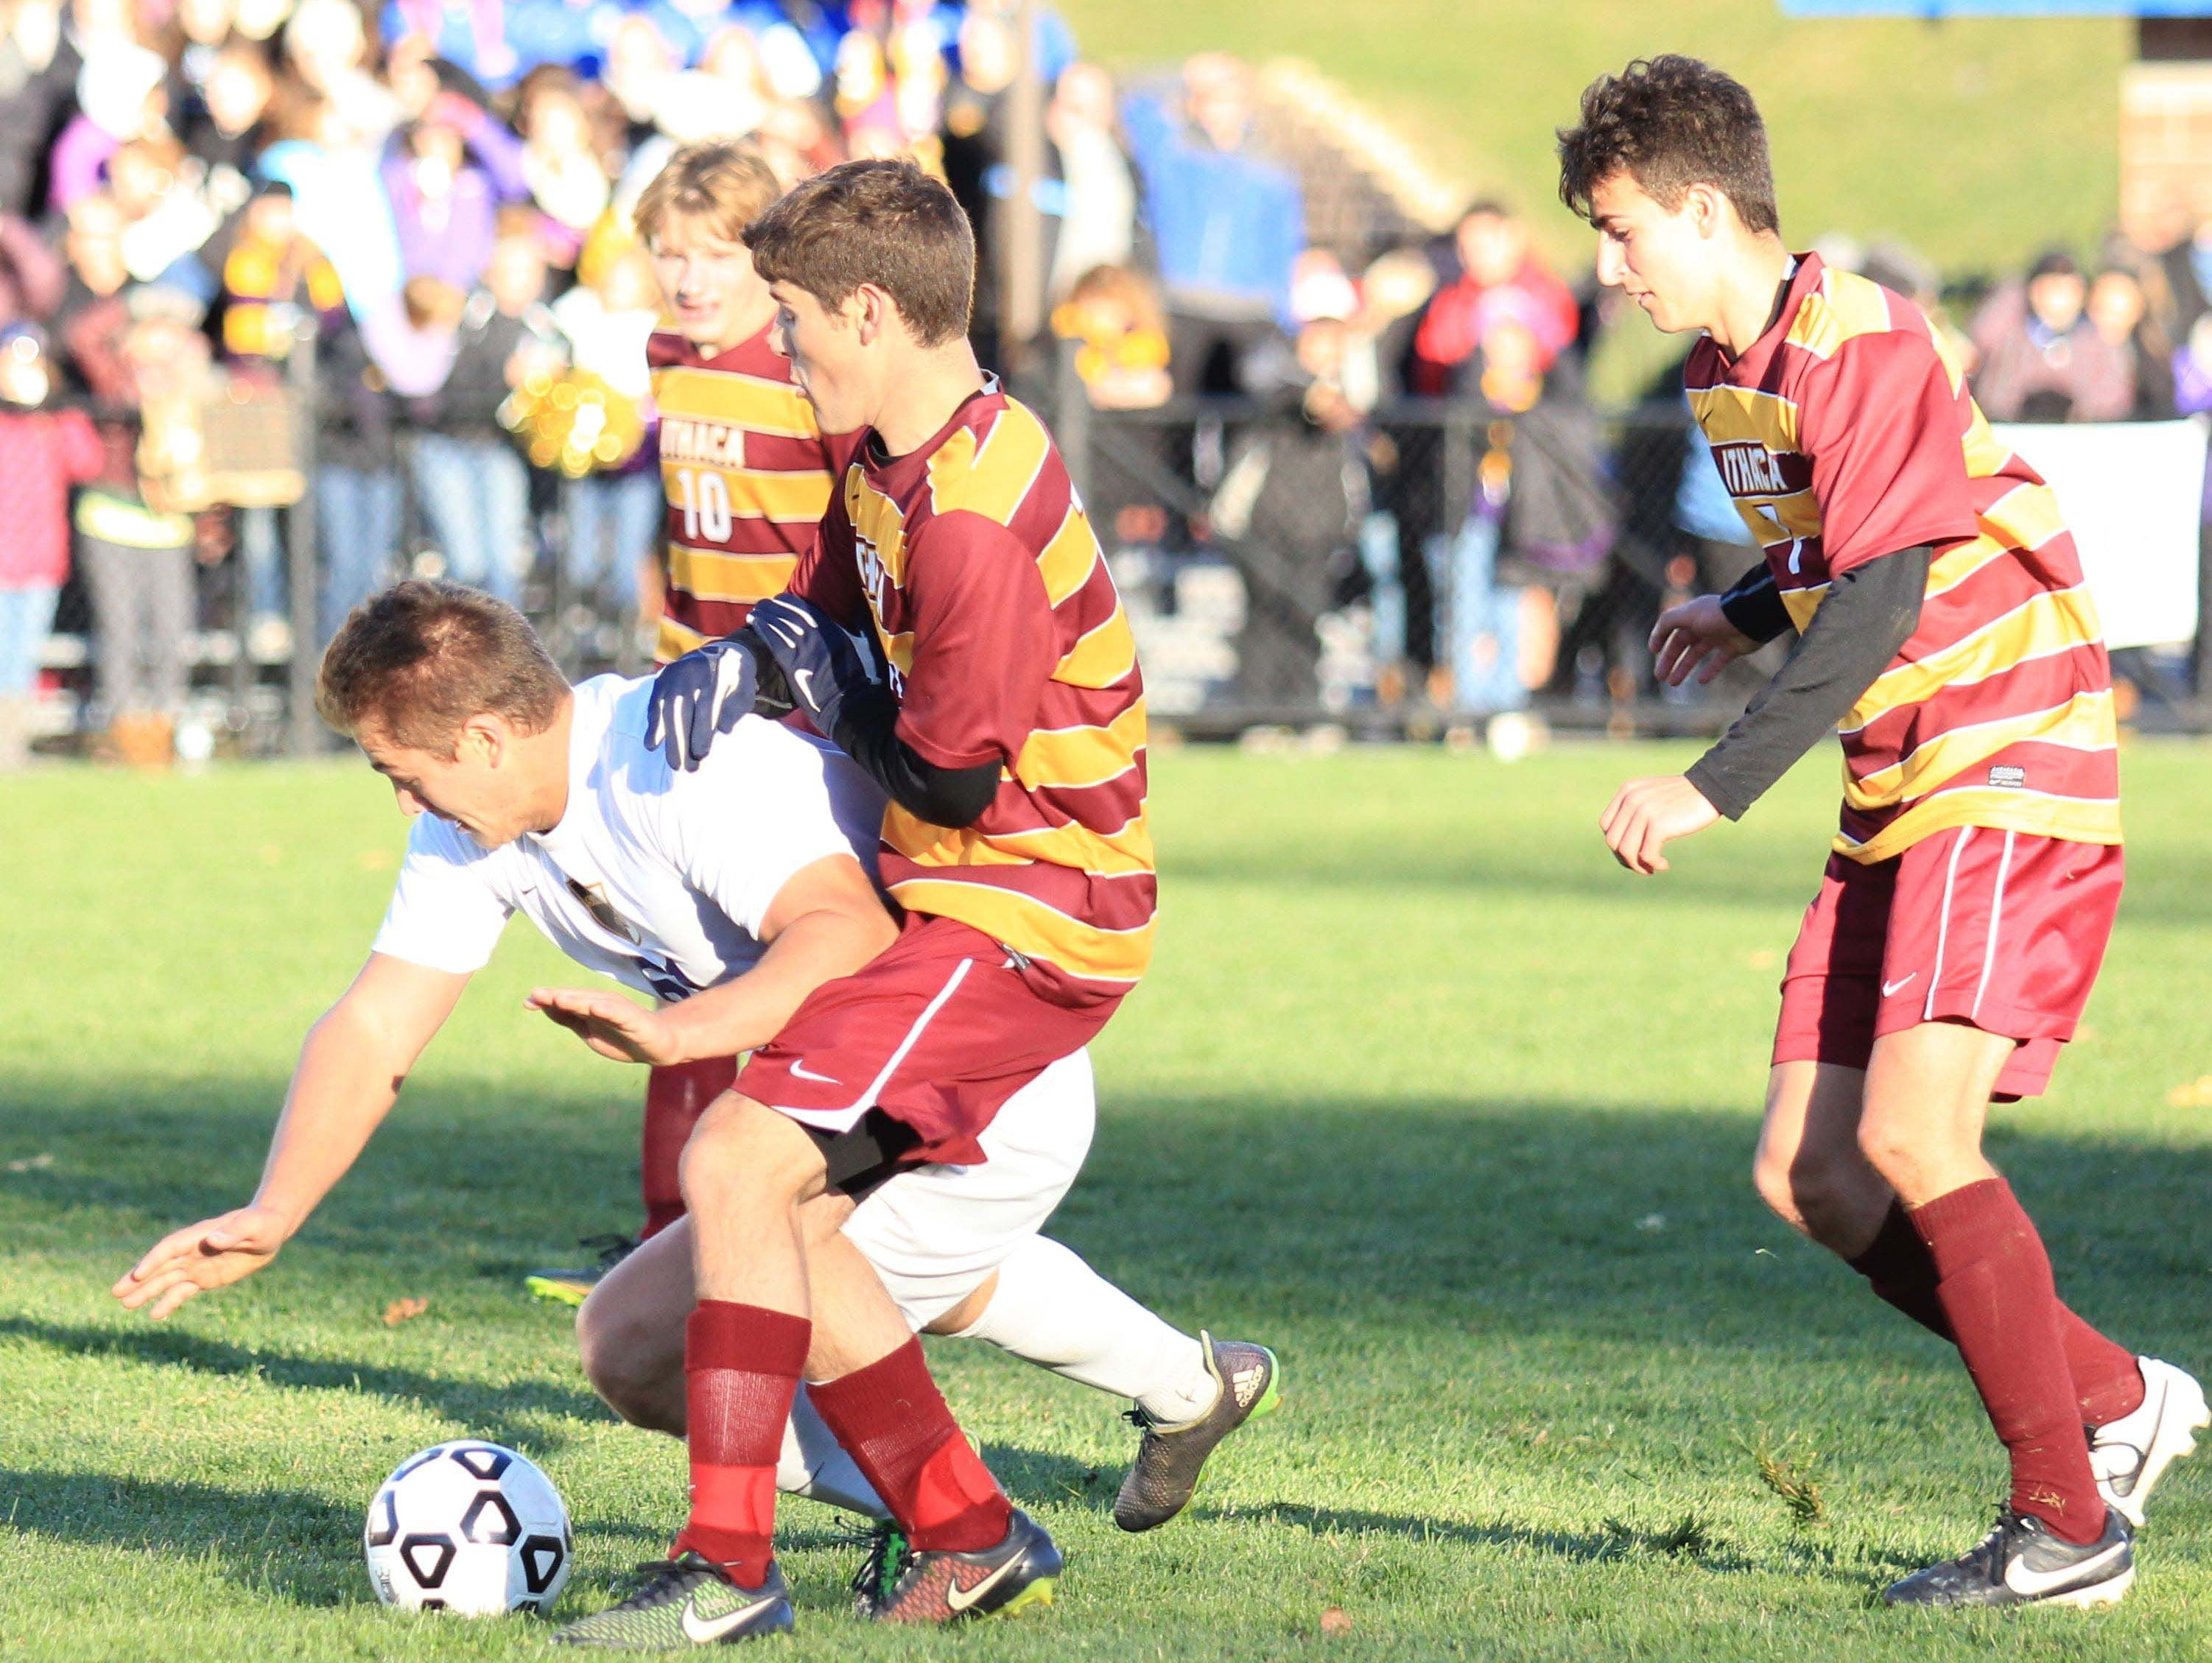 Ithaca players get physical to take the ball away during NYSPHSAA semi final in Middletown, NY